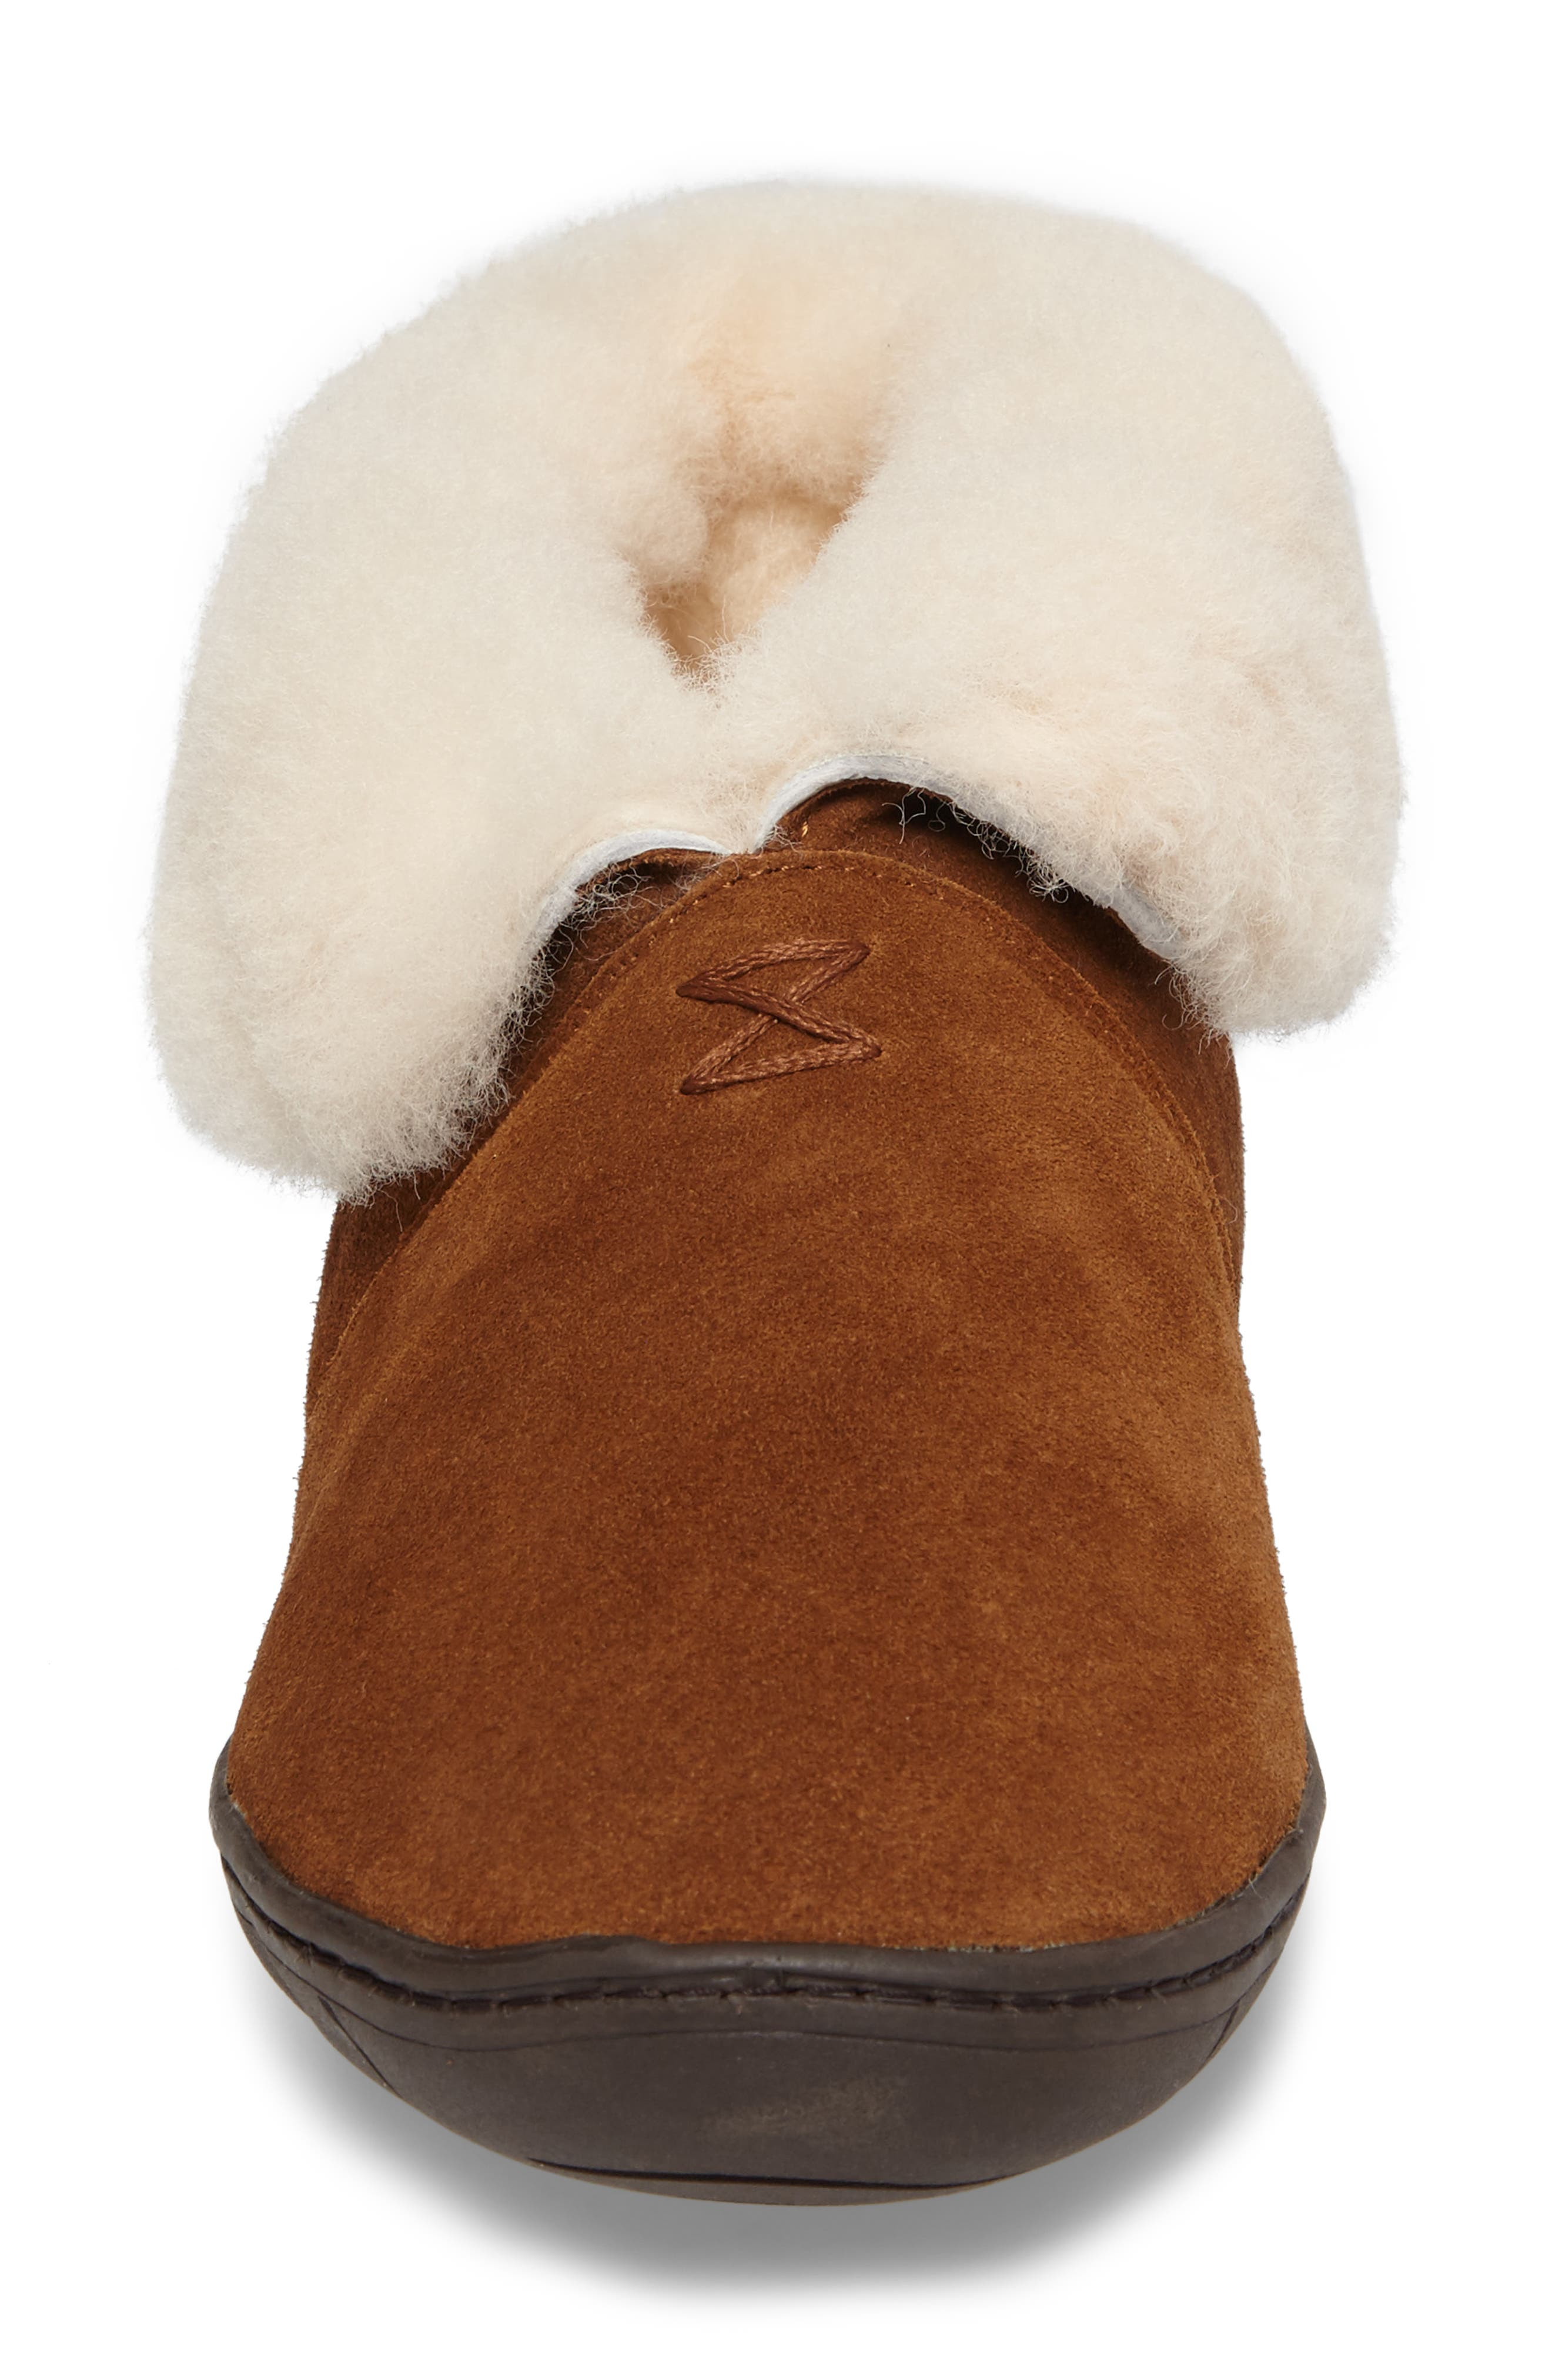 Tundra Slipper Bootie with Genuine Shearling Lining,                             Alternate thumbnail 4, color,                             212